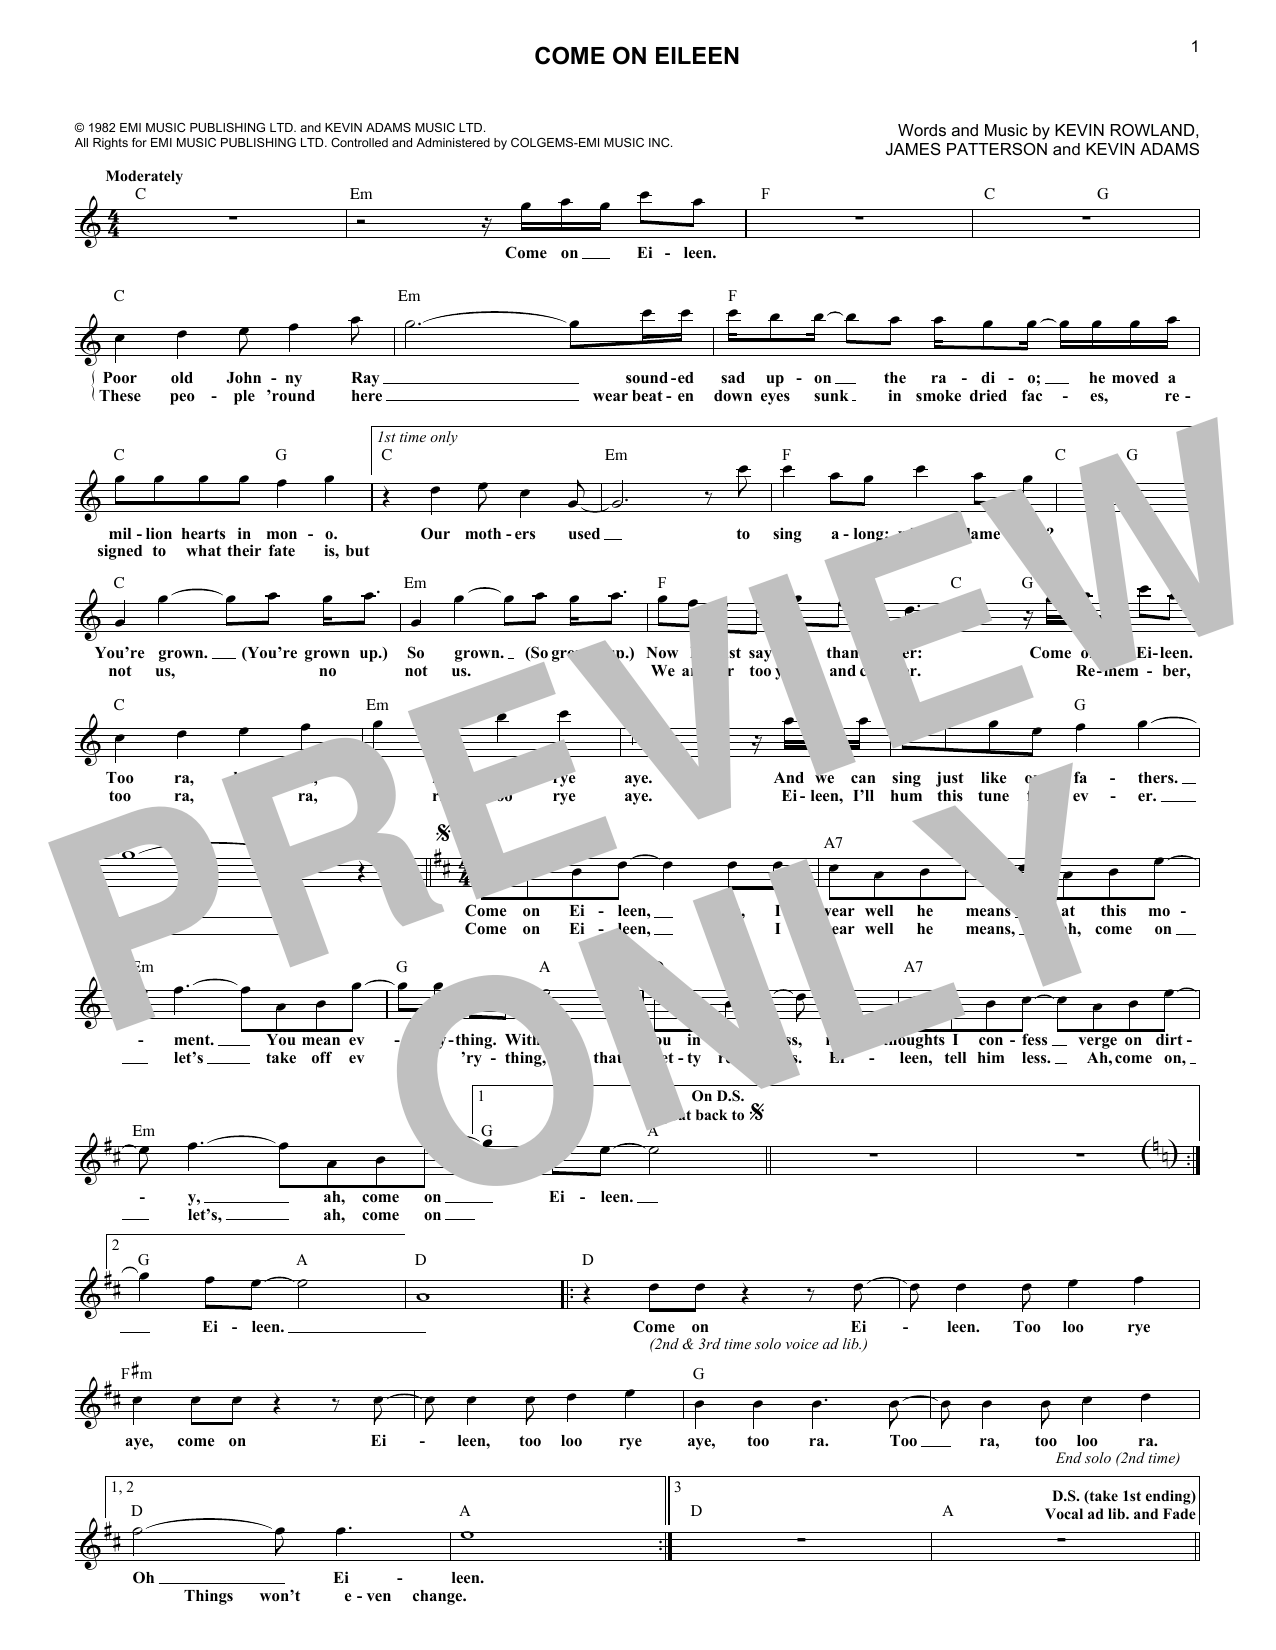 Dexys Midnight Runners Come On Eileen Sheet Music Notes, Chords   Download  Printable Lead Sheet / Fake Book PDF Score   SKU 15